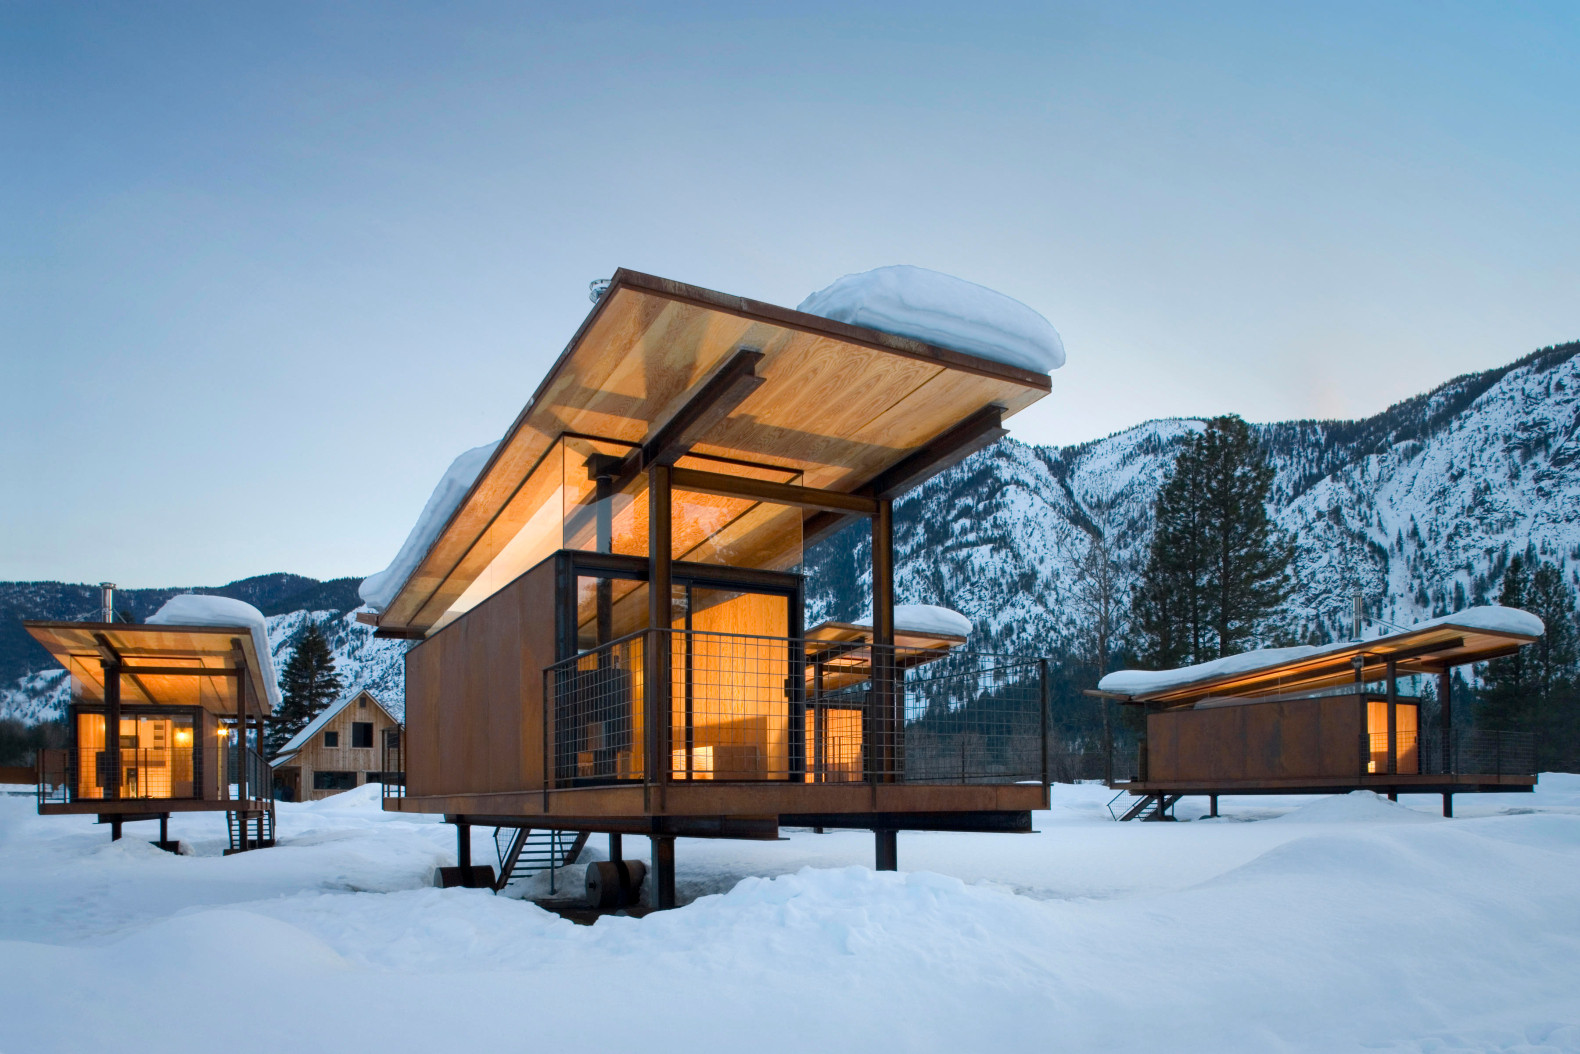 Olson Kundig breathes new life into former RV campground with low-impact huts on wheels